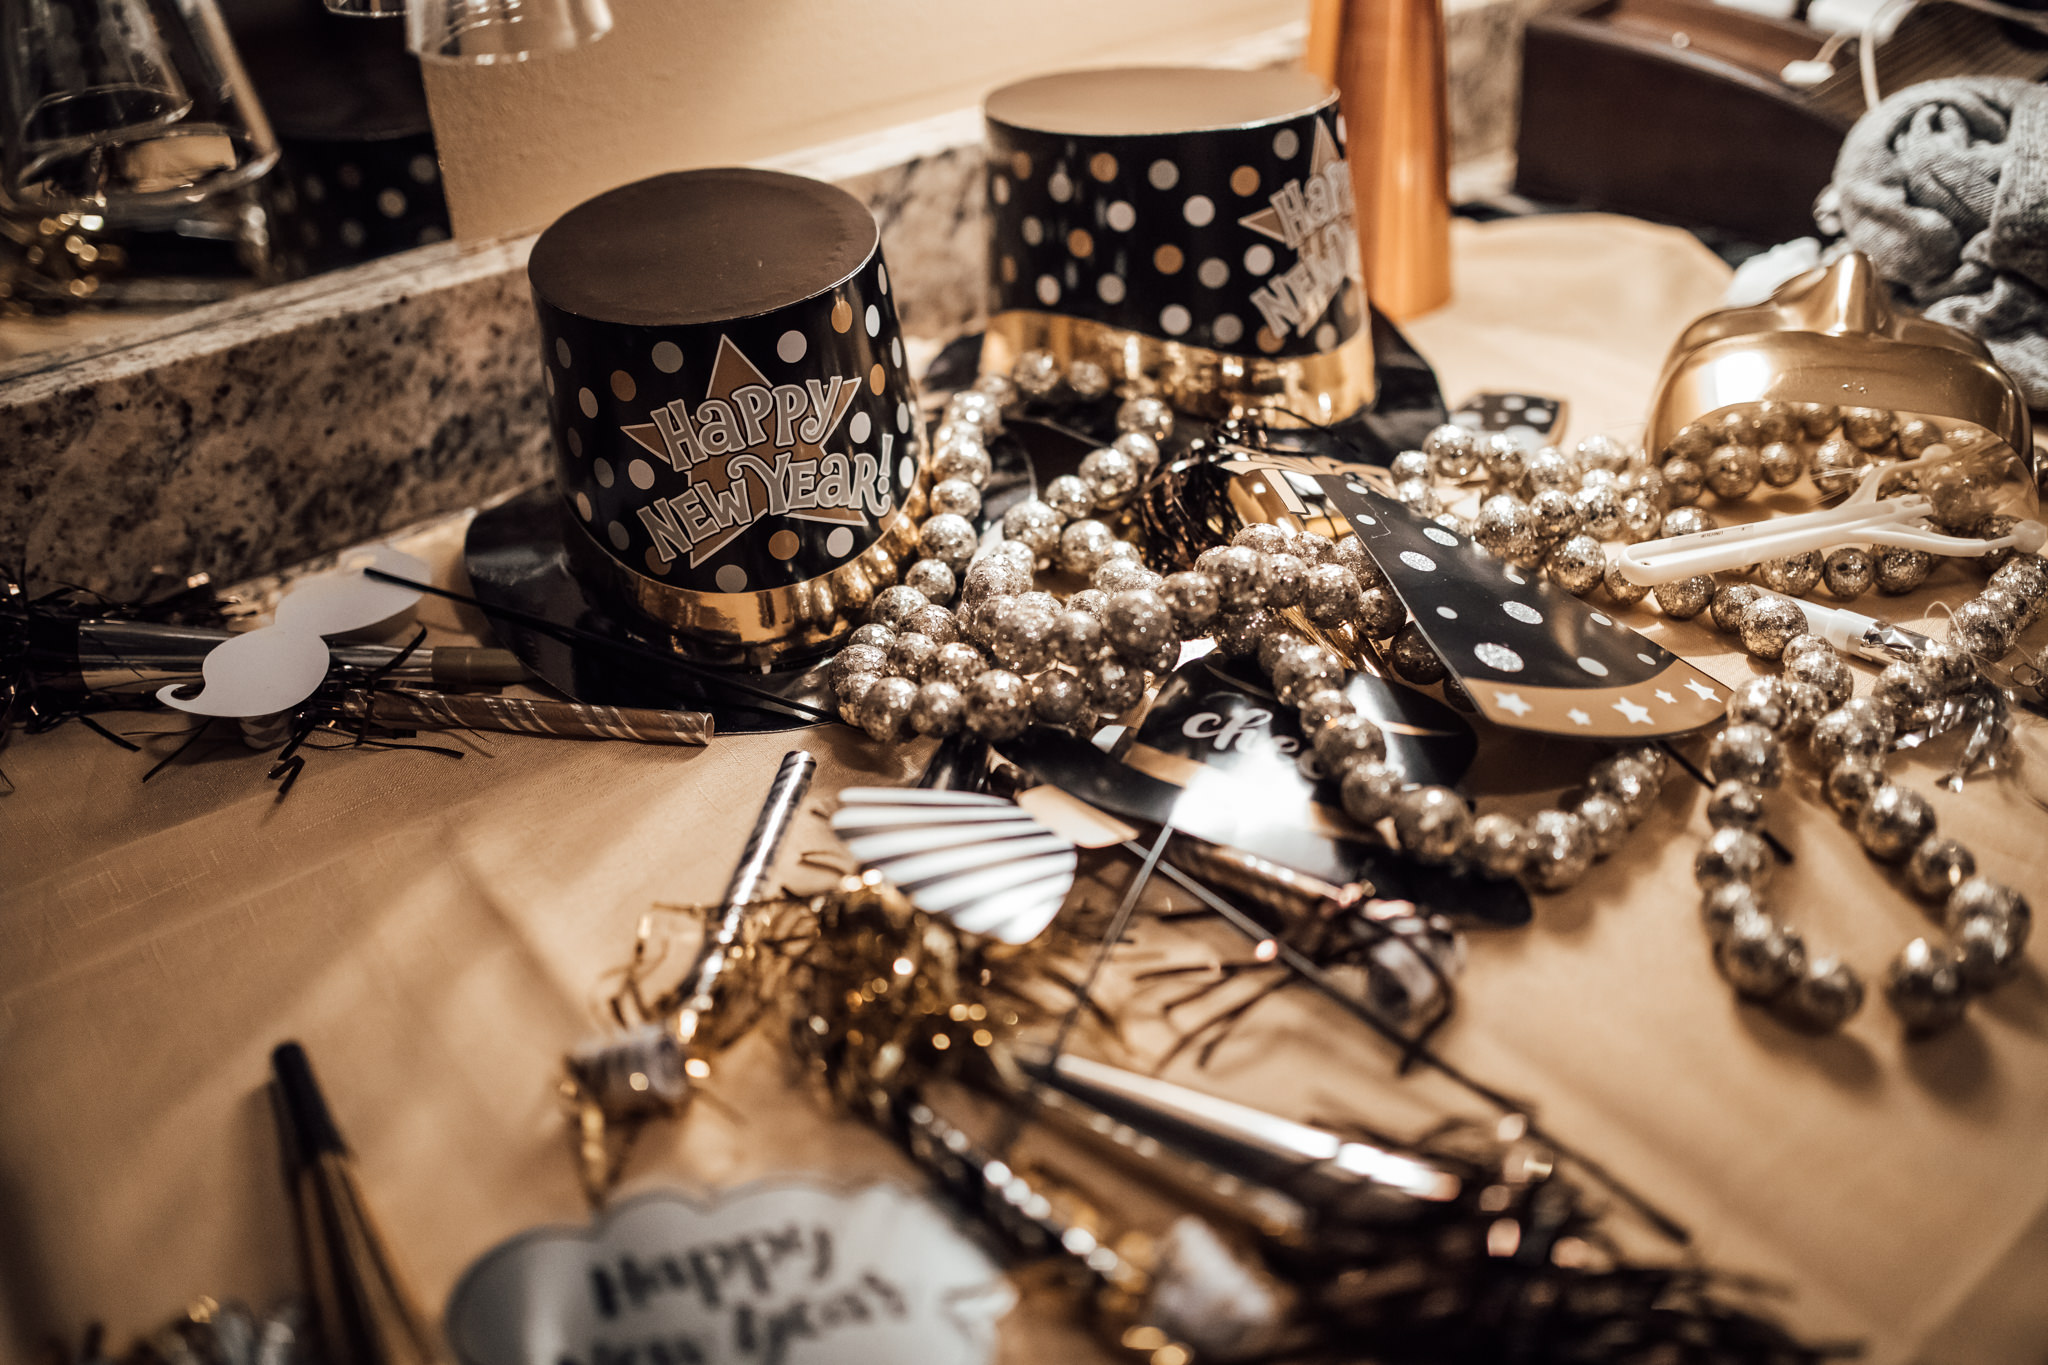 memphis-engagement-photographer-new-years-eve-proposal-cassie-cook-photography-36.jpg